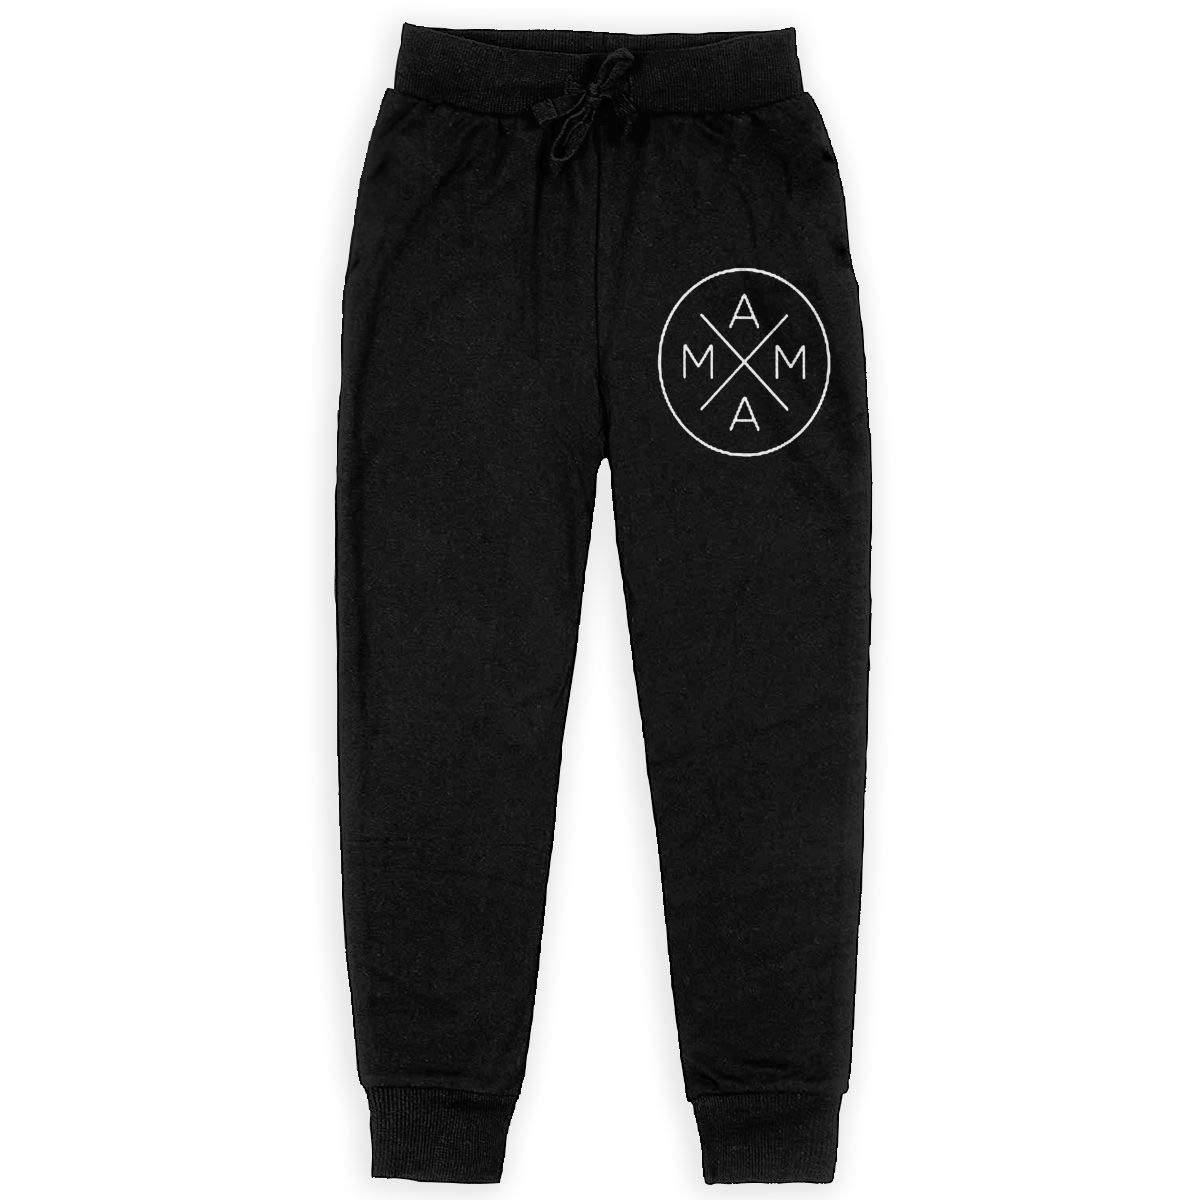 Kim Mittelstaedt Mama X Boys Big Active Basic Casual Pants Sweatpants for Boys Black